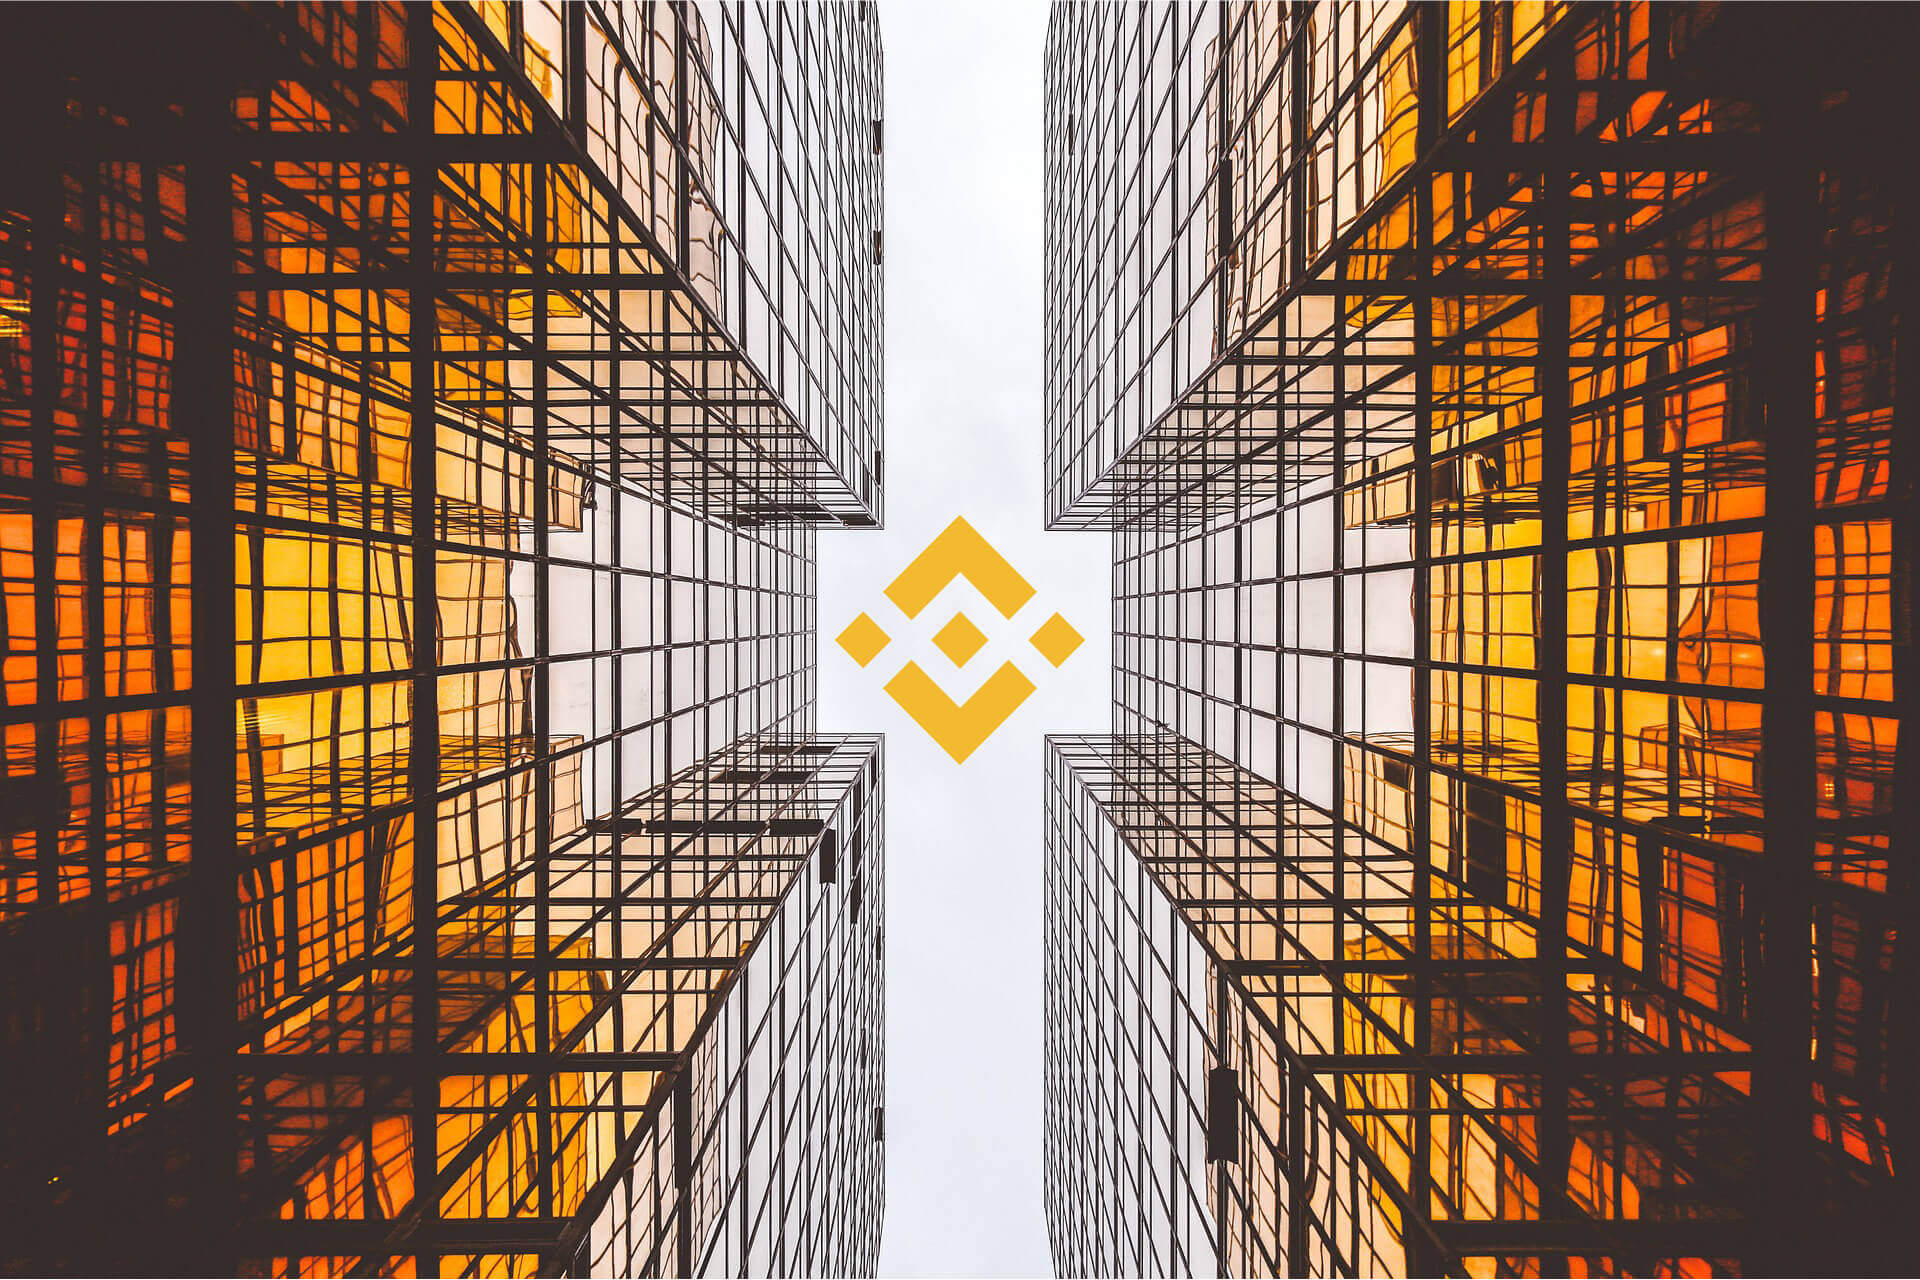 Binance BNB coin price is heading for an all-time high